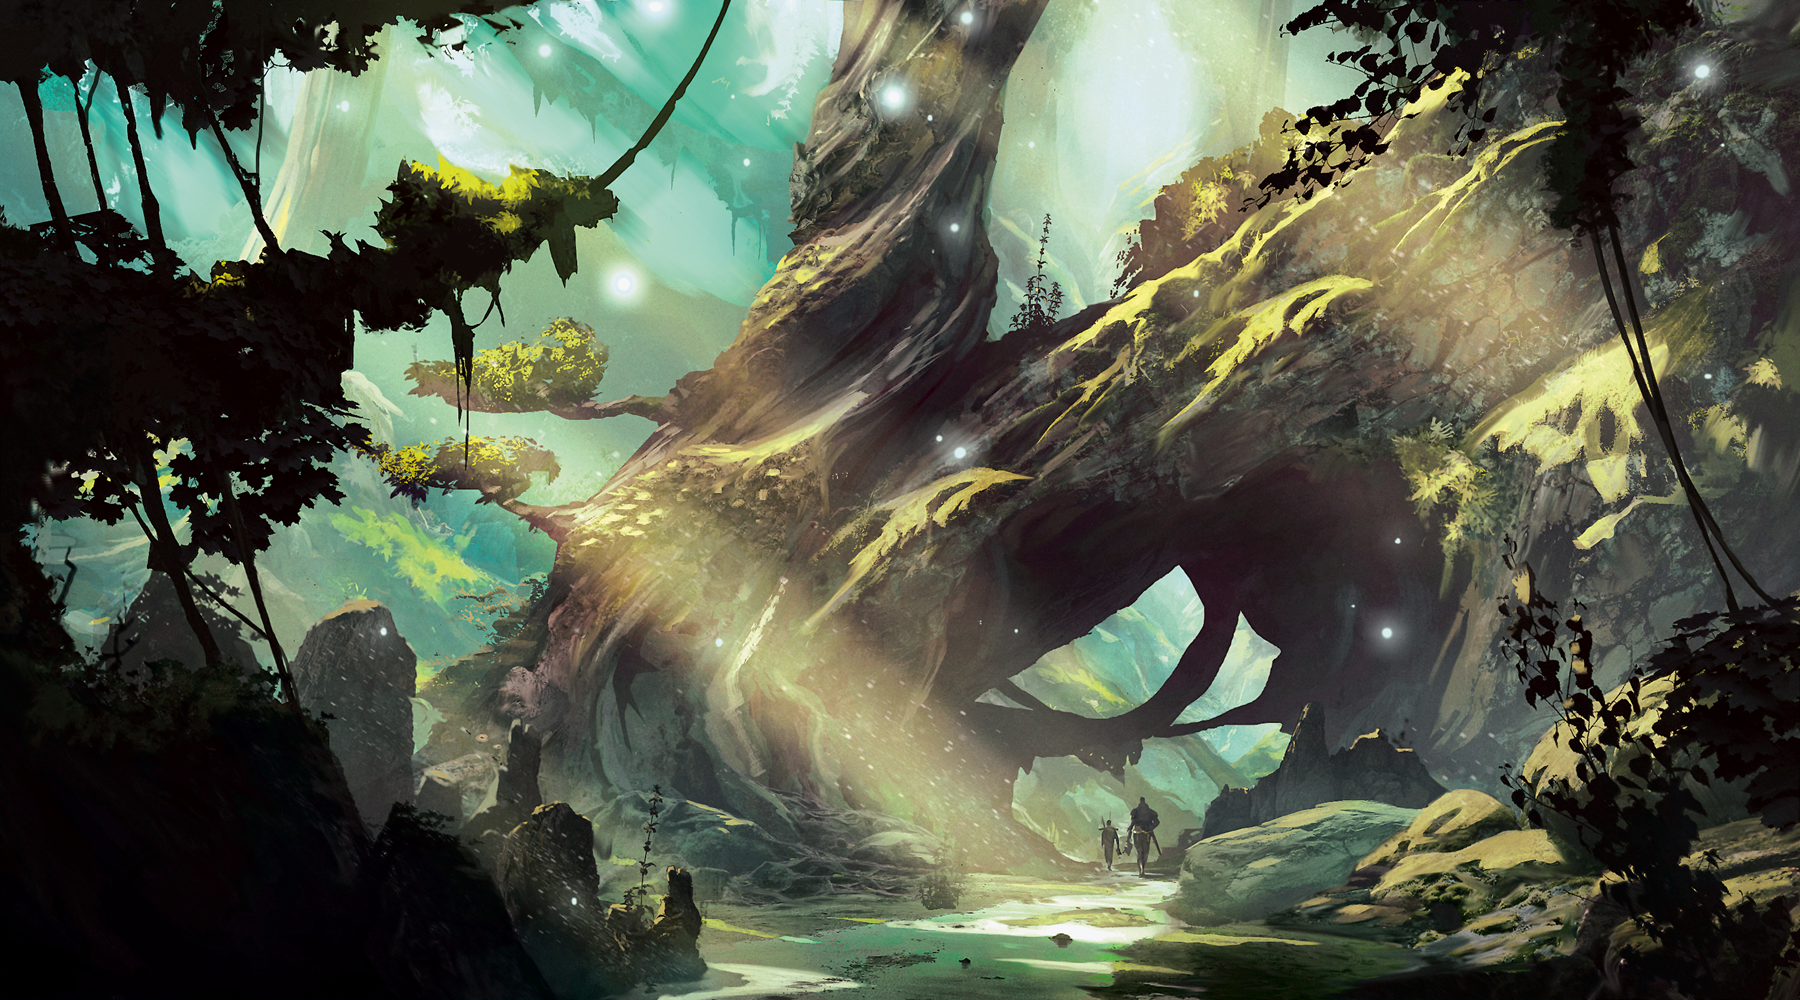 An image of a Dungeons and Dragons forest landscape